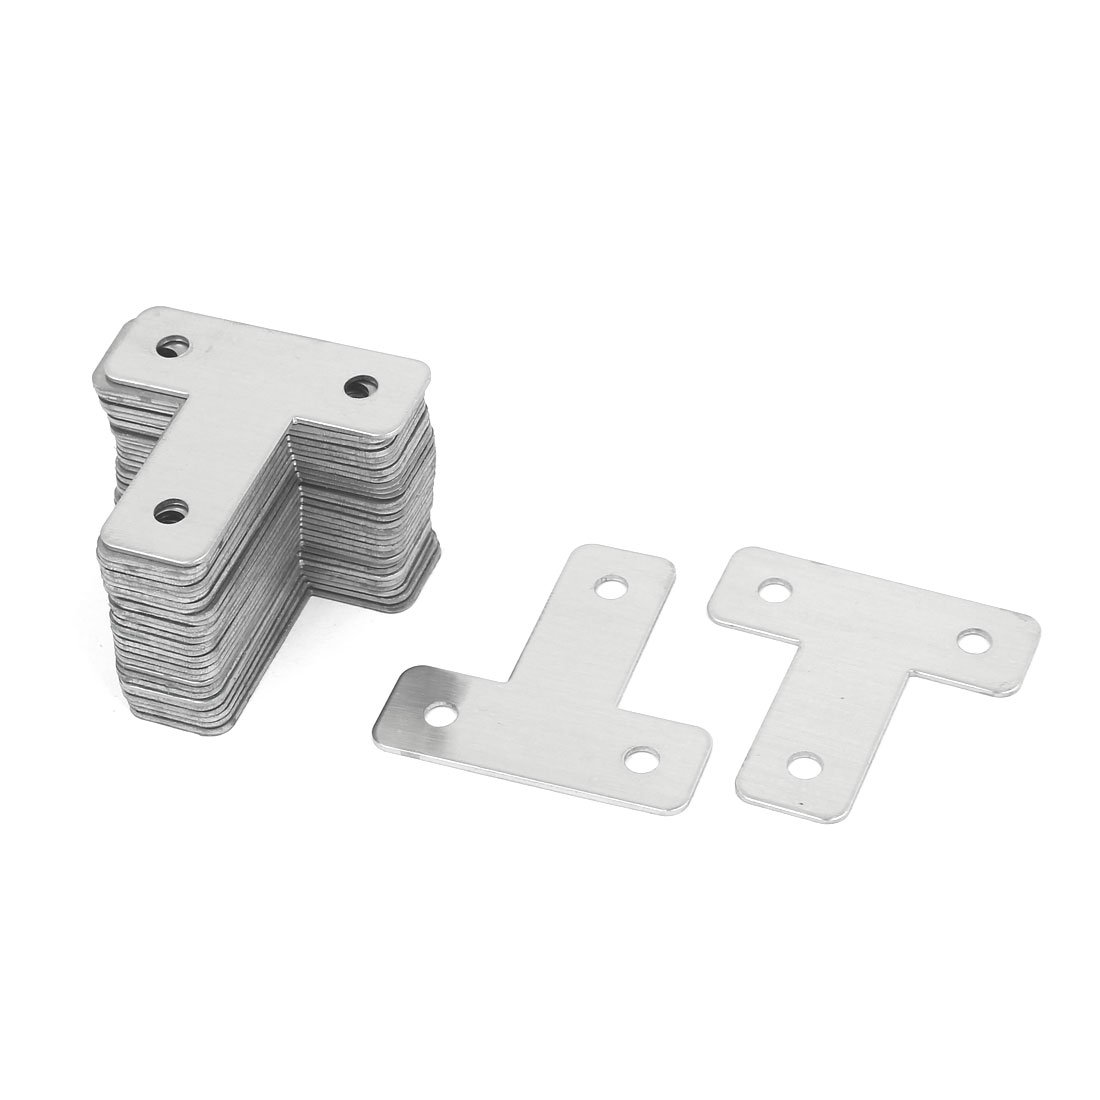 uxcell Door Bed 43mmx43mm T Shaped Stainless Steel Angle Bracket Corner Brace 30pcs